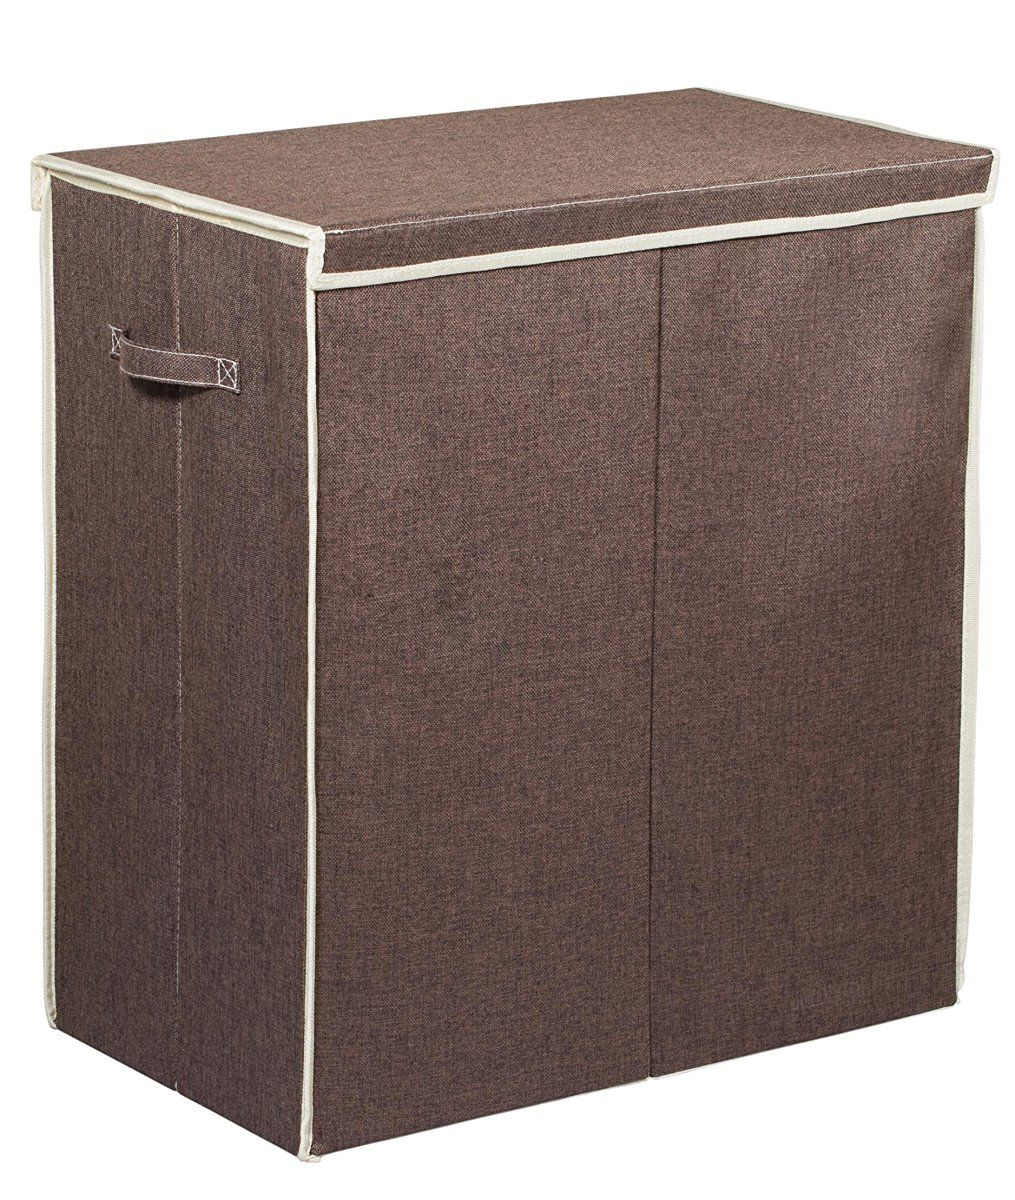 Double Laundry Hamper With Lid Two Compartment Clothes Laundry